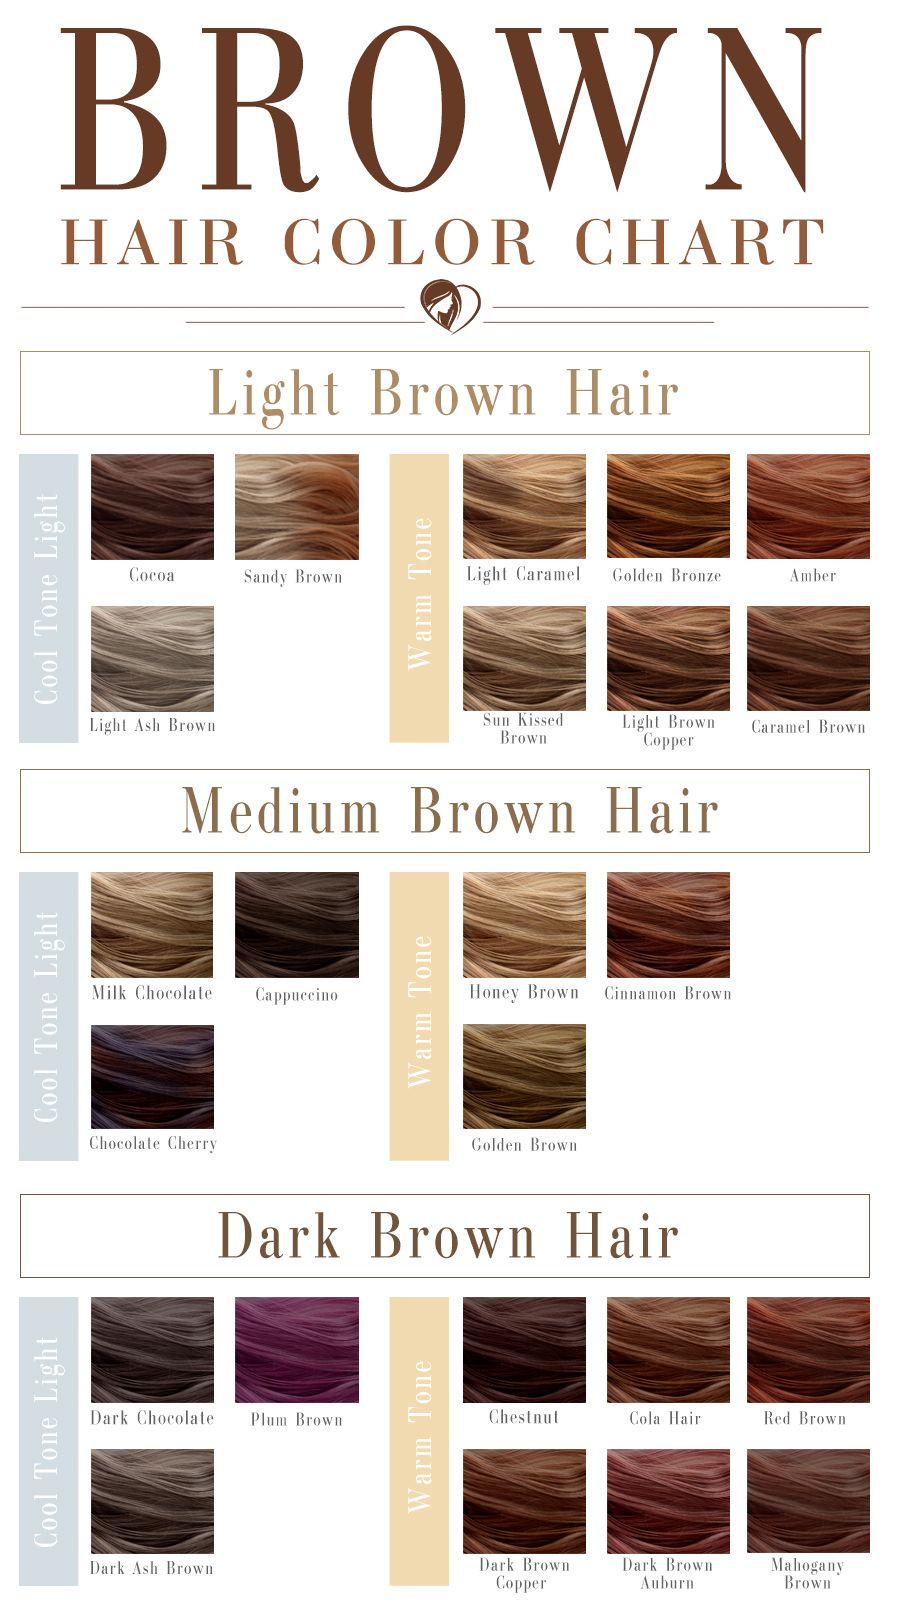 40 Shades Of Brown Hair Color Chart To Suit Any Complexion Brown Hair Shades Brown Hair Color Chart Brown Hair Colors